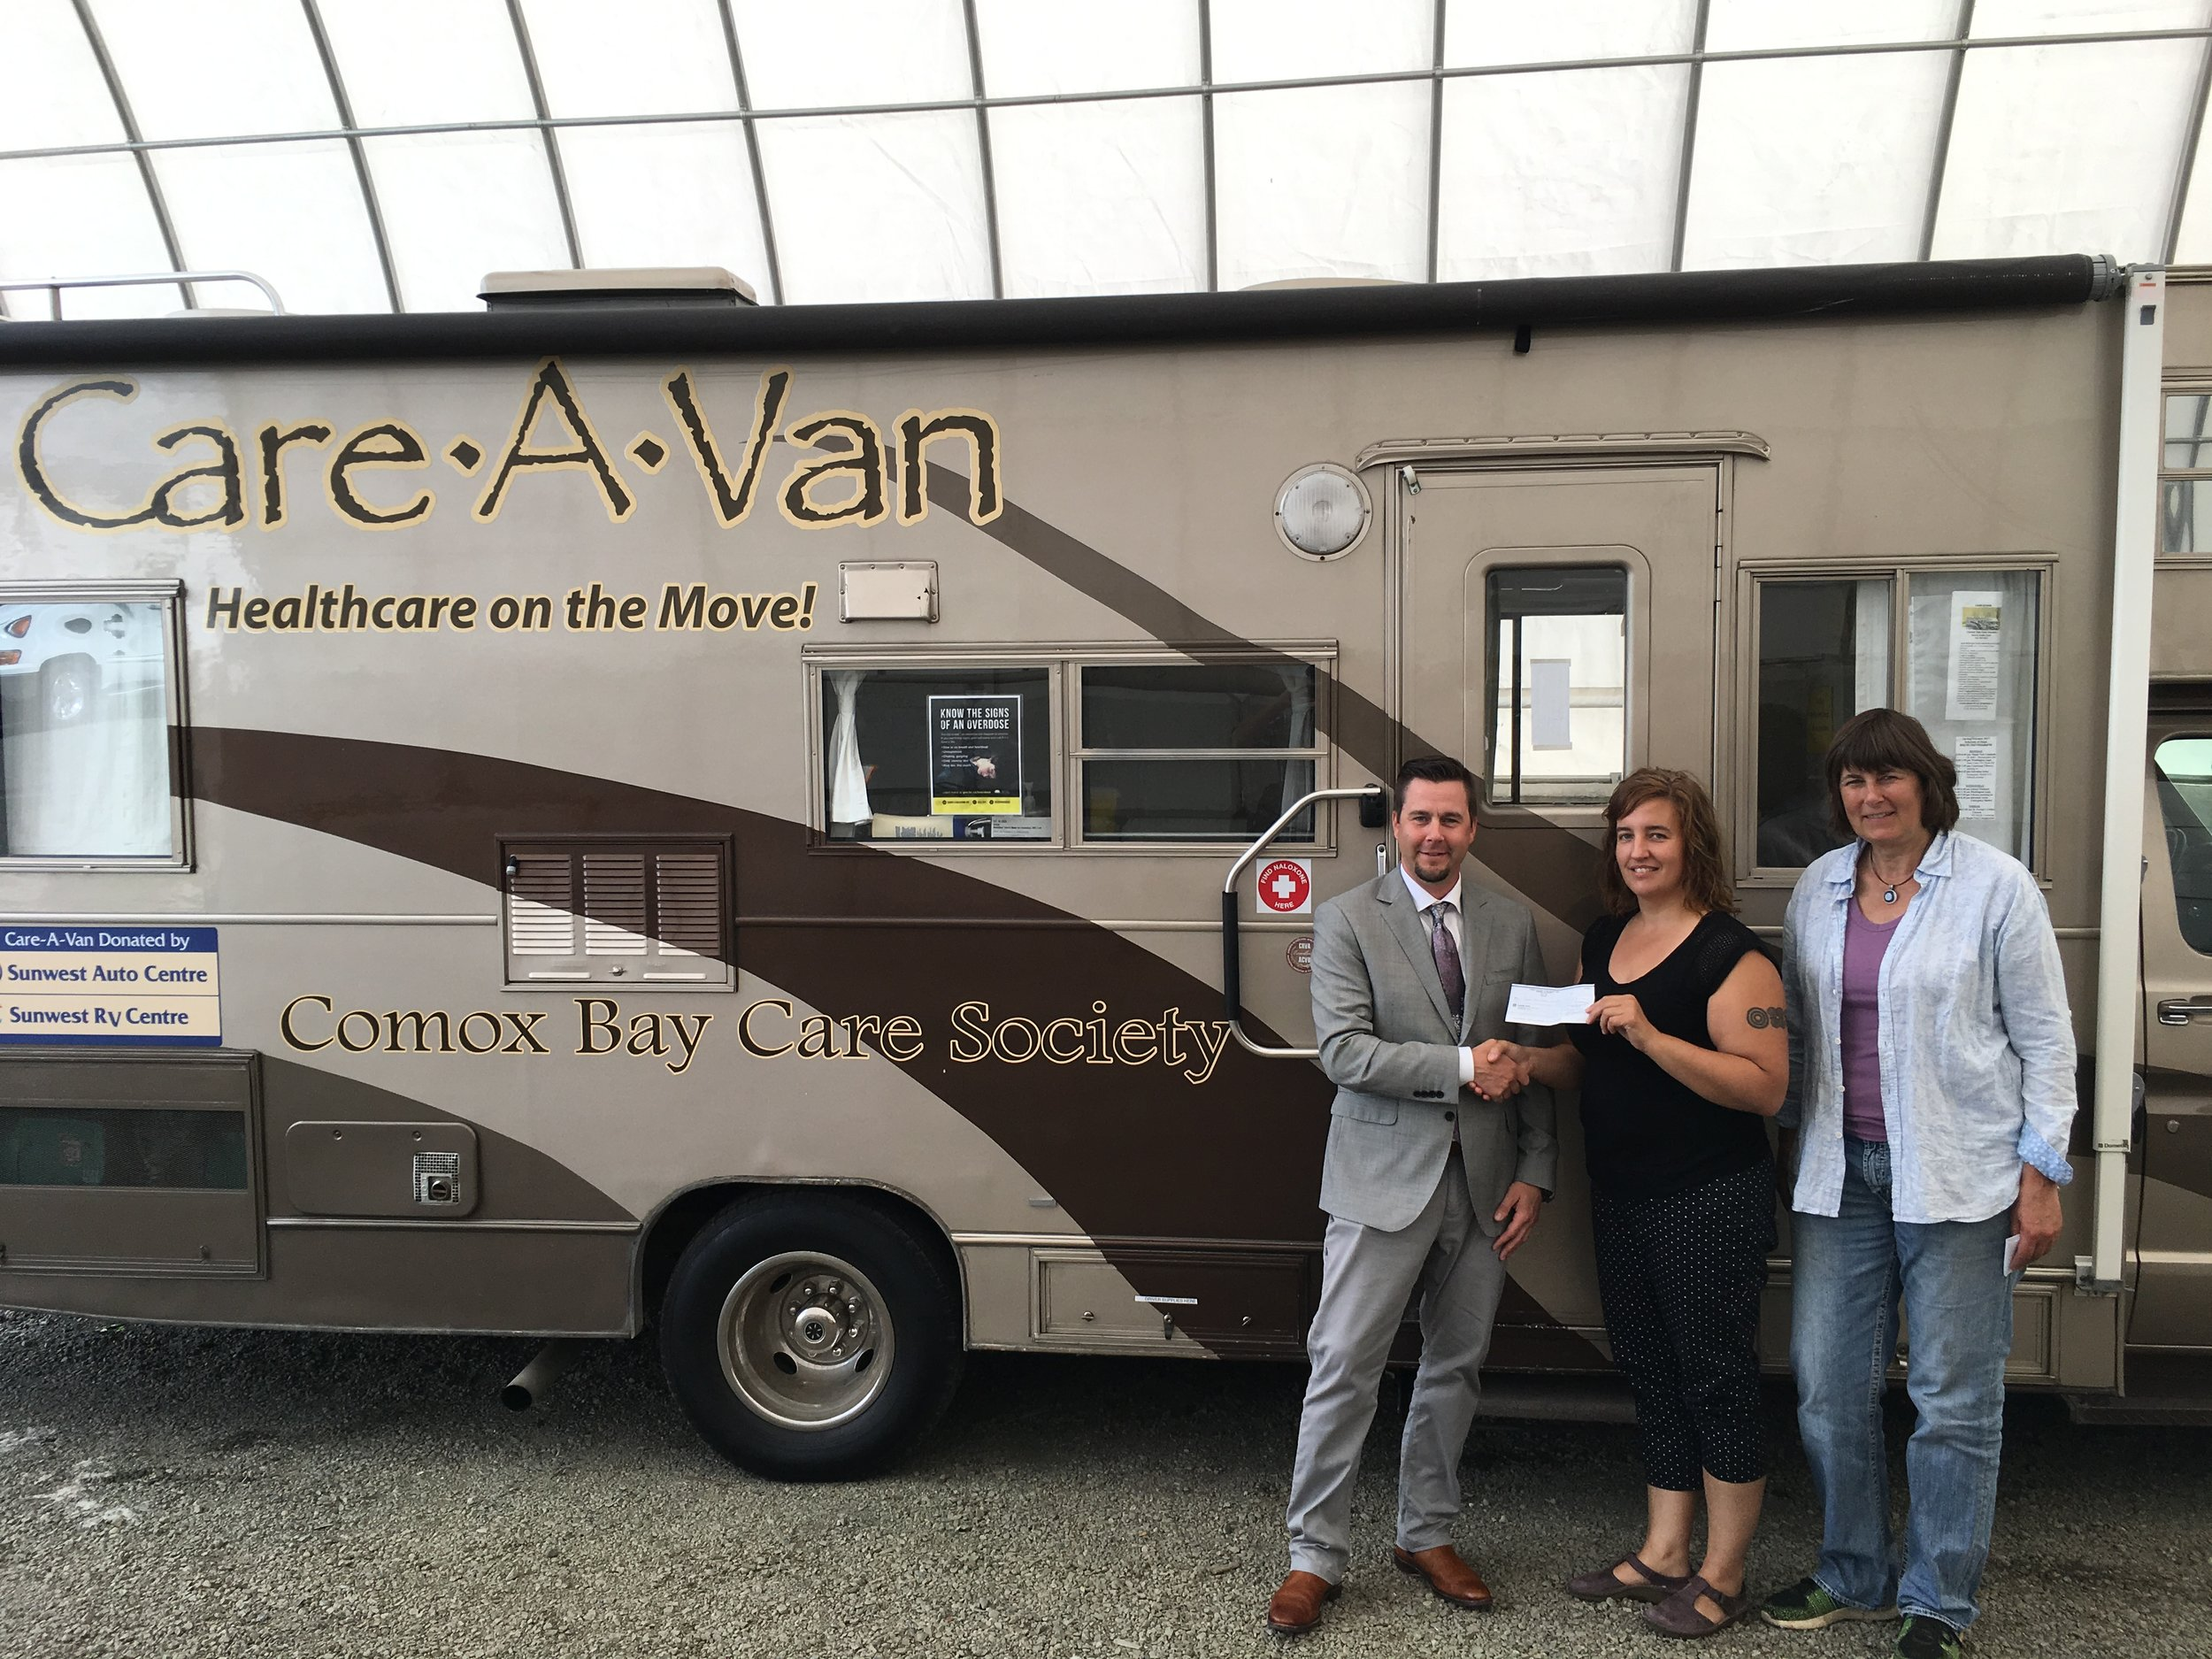 Comox Rotary Donates $10,000 to Comox Valley Care-A-Van